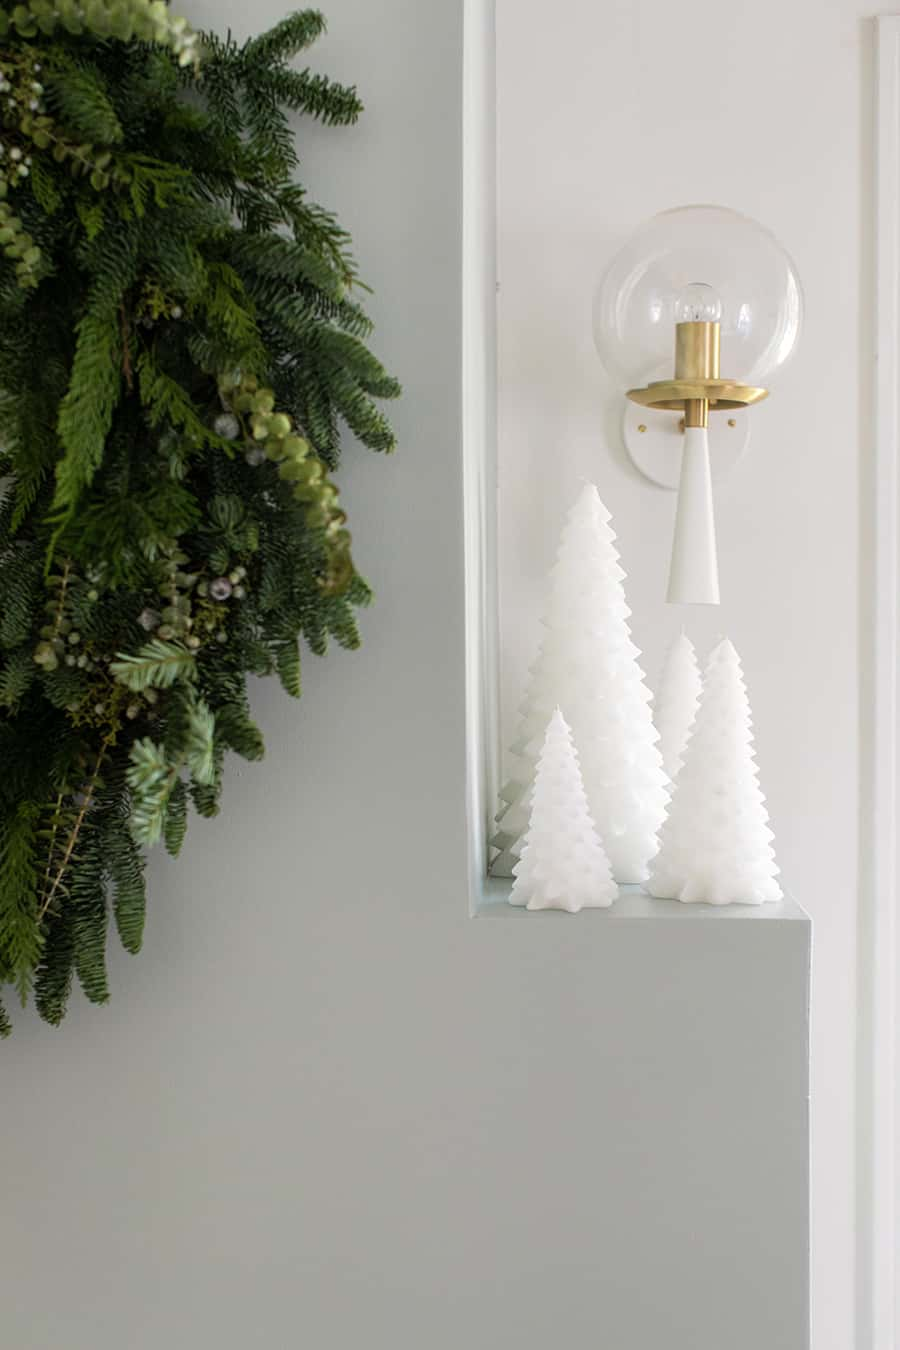 e4914597fe8 The large white Christmas tree candles are also a favorite that I use every  year. They re instant decor!